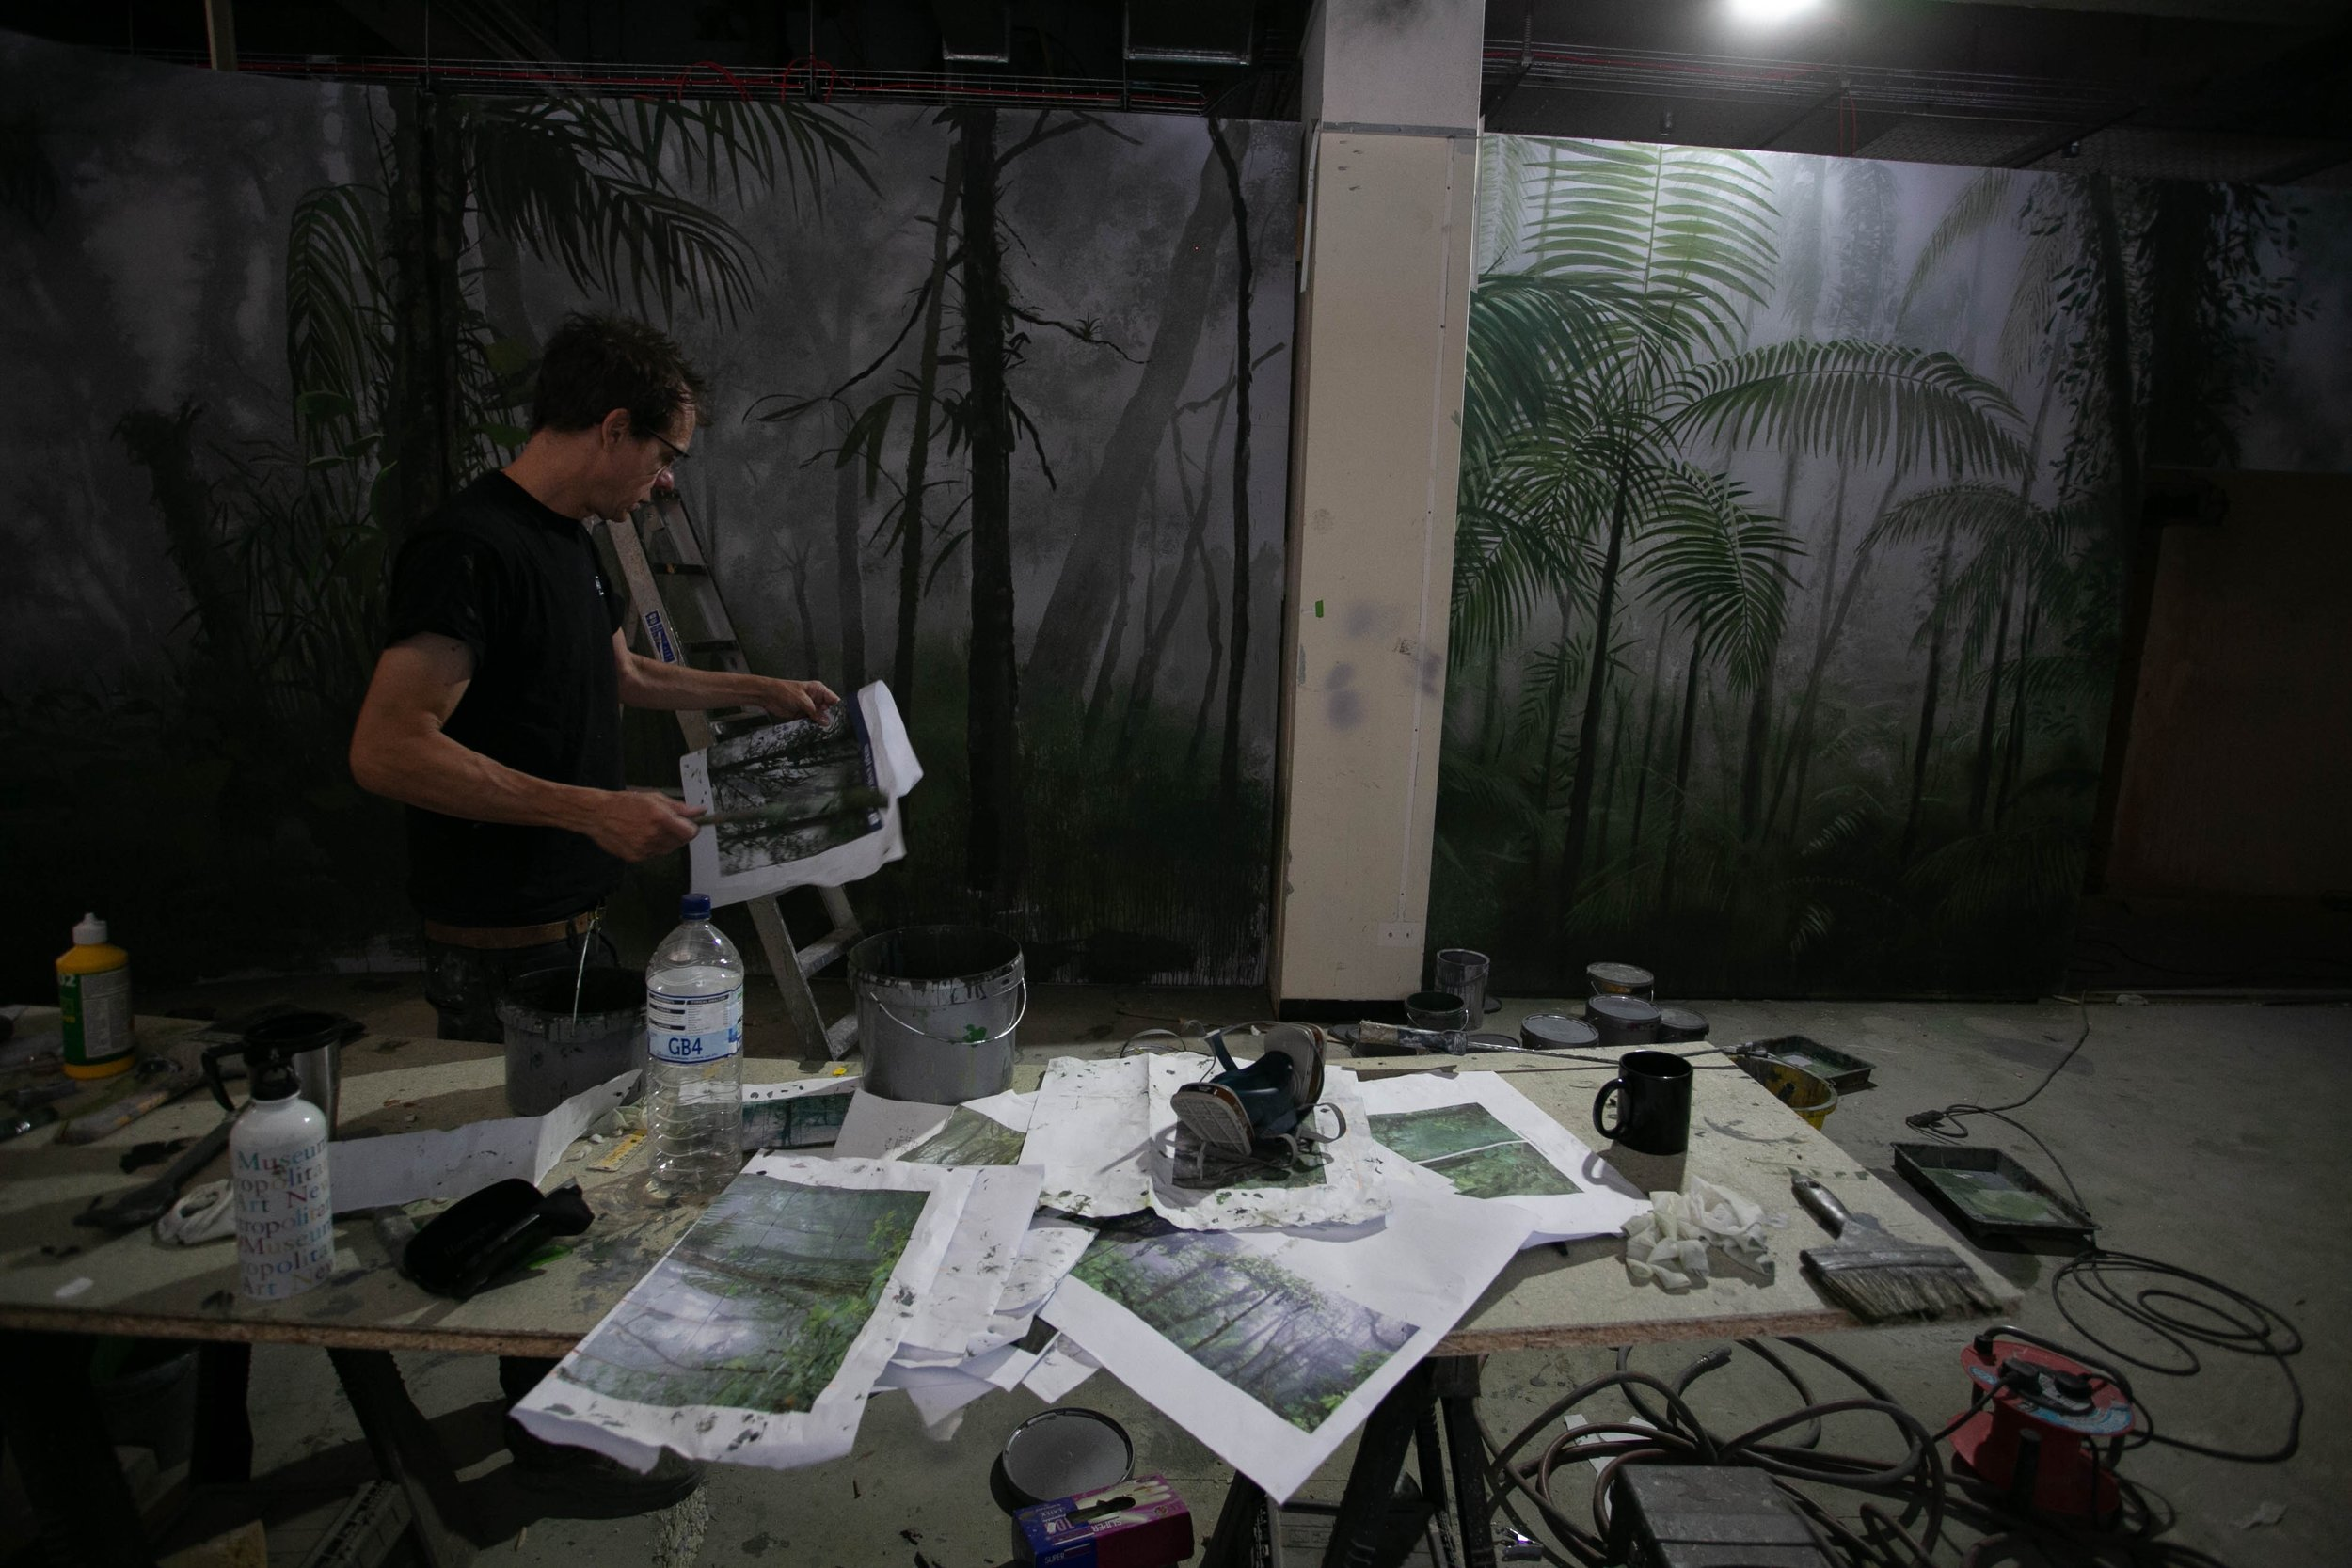 Craftwork Projects Jungle scenic artist.jpg